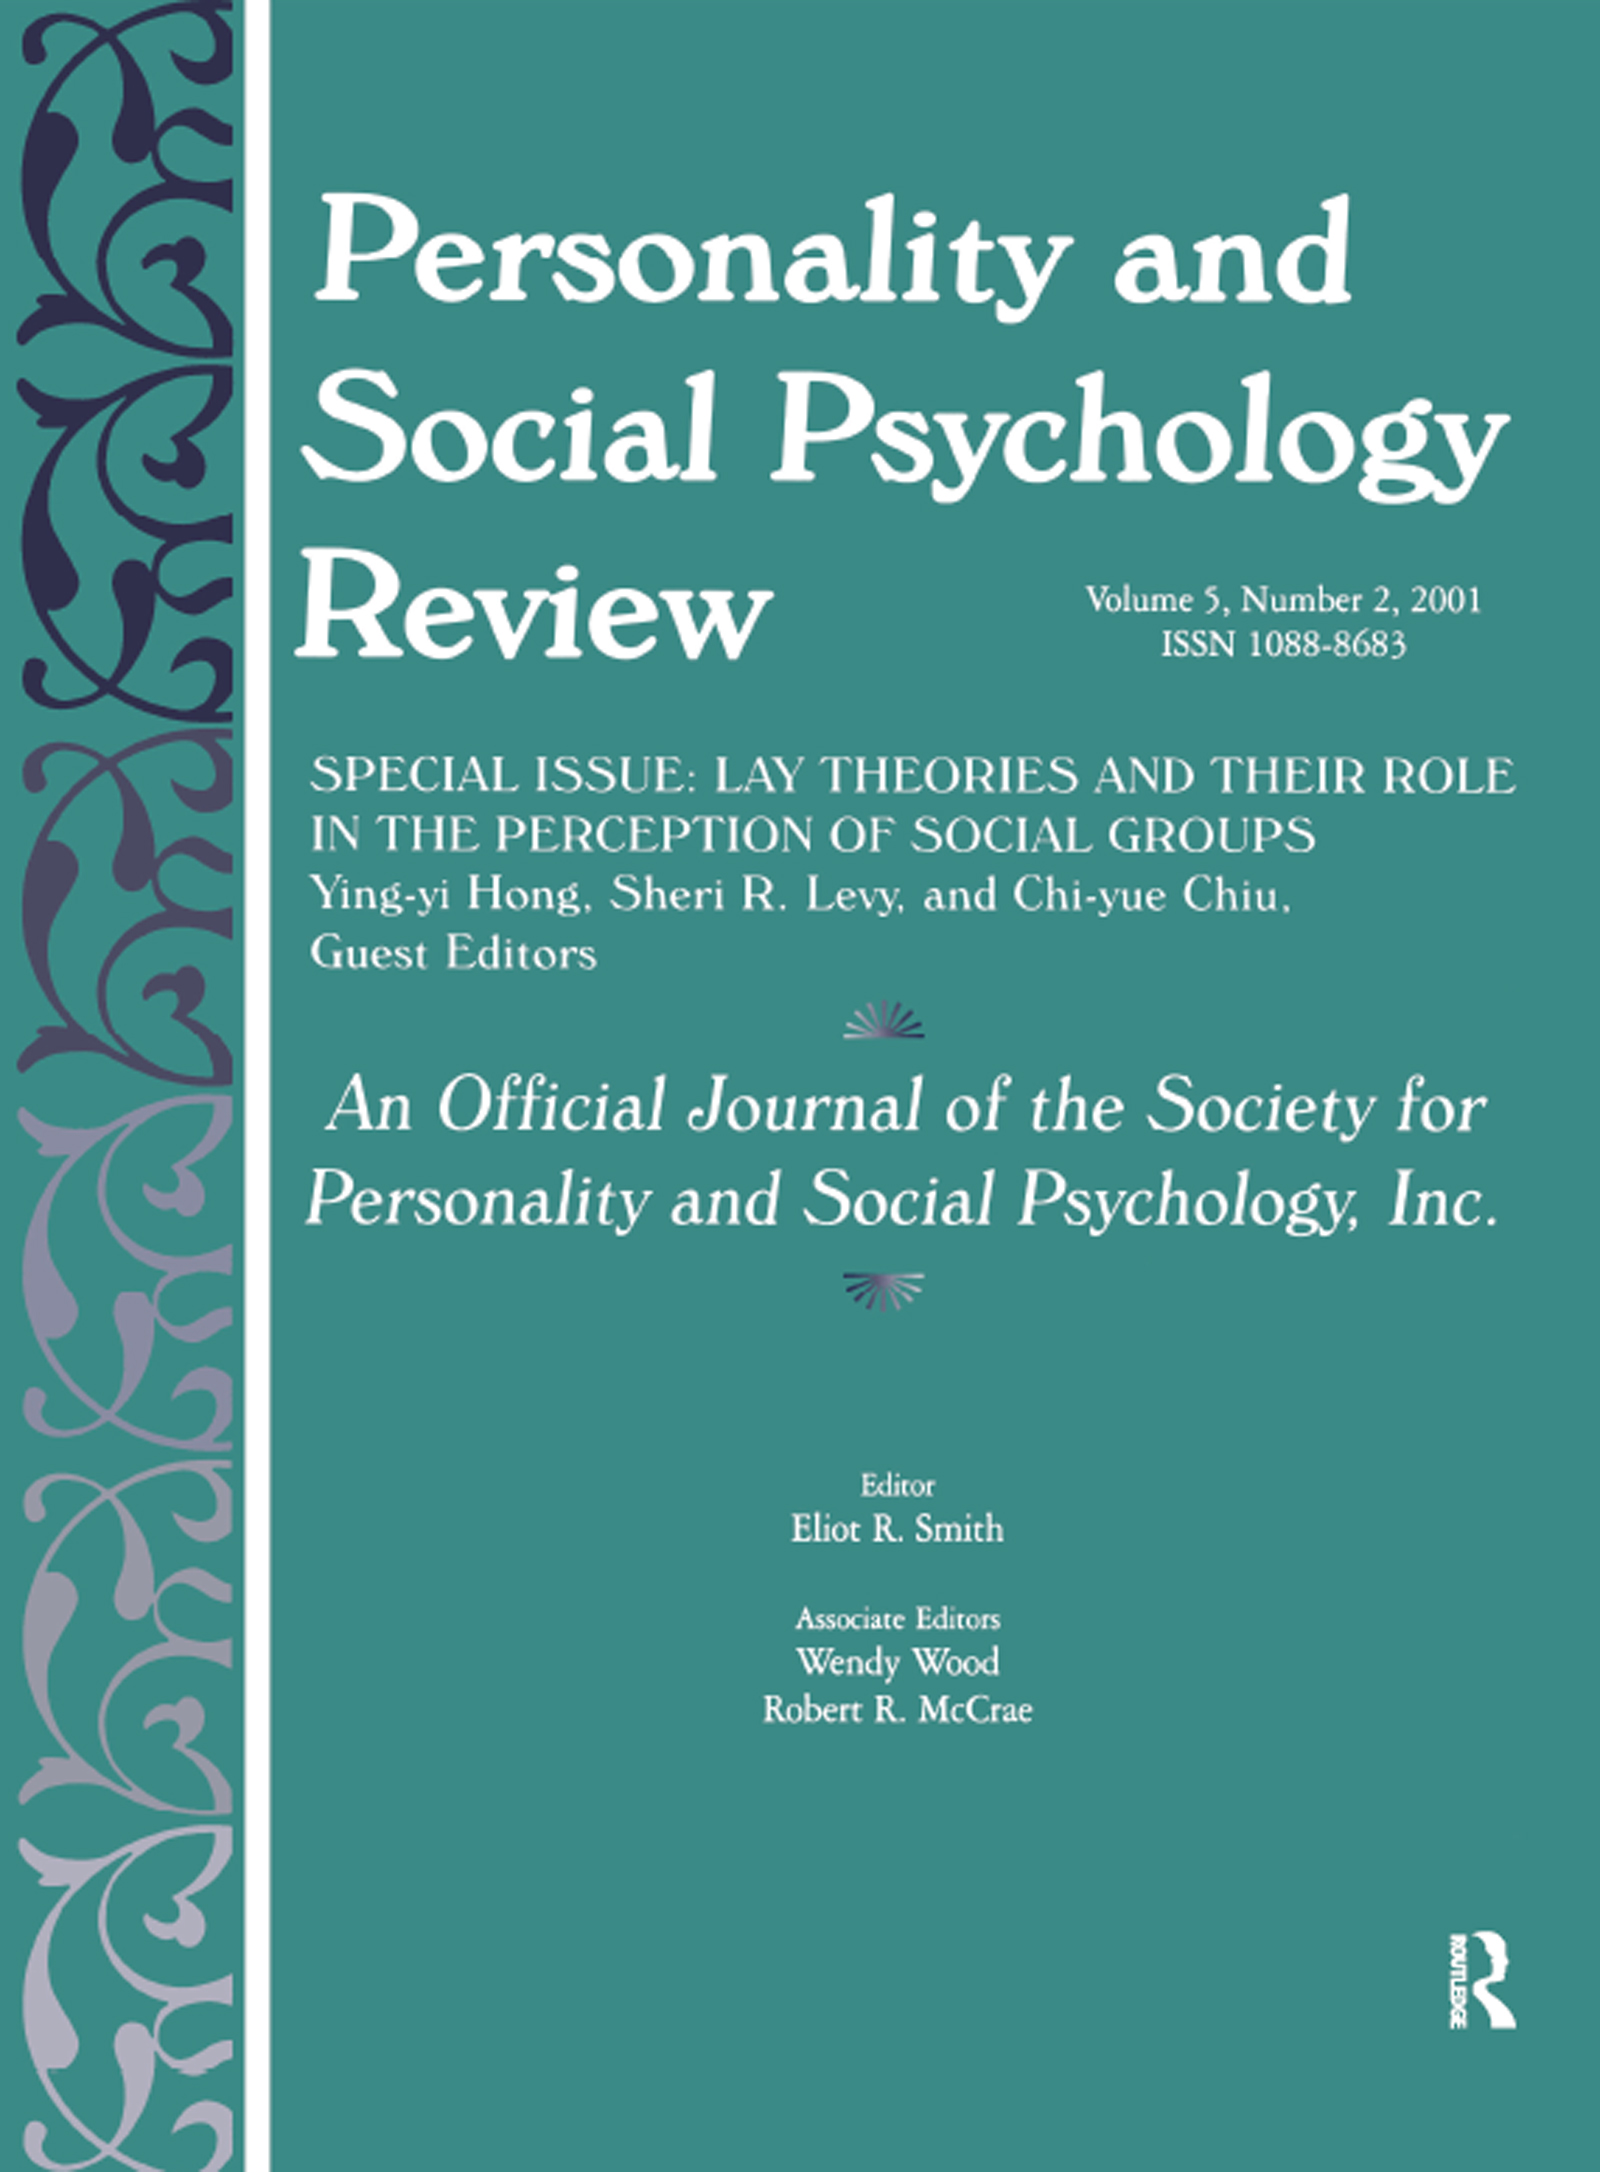 Lay Theories and Their Role in the Perception of Social Groups